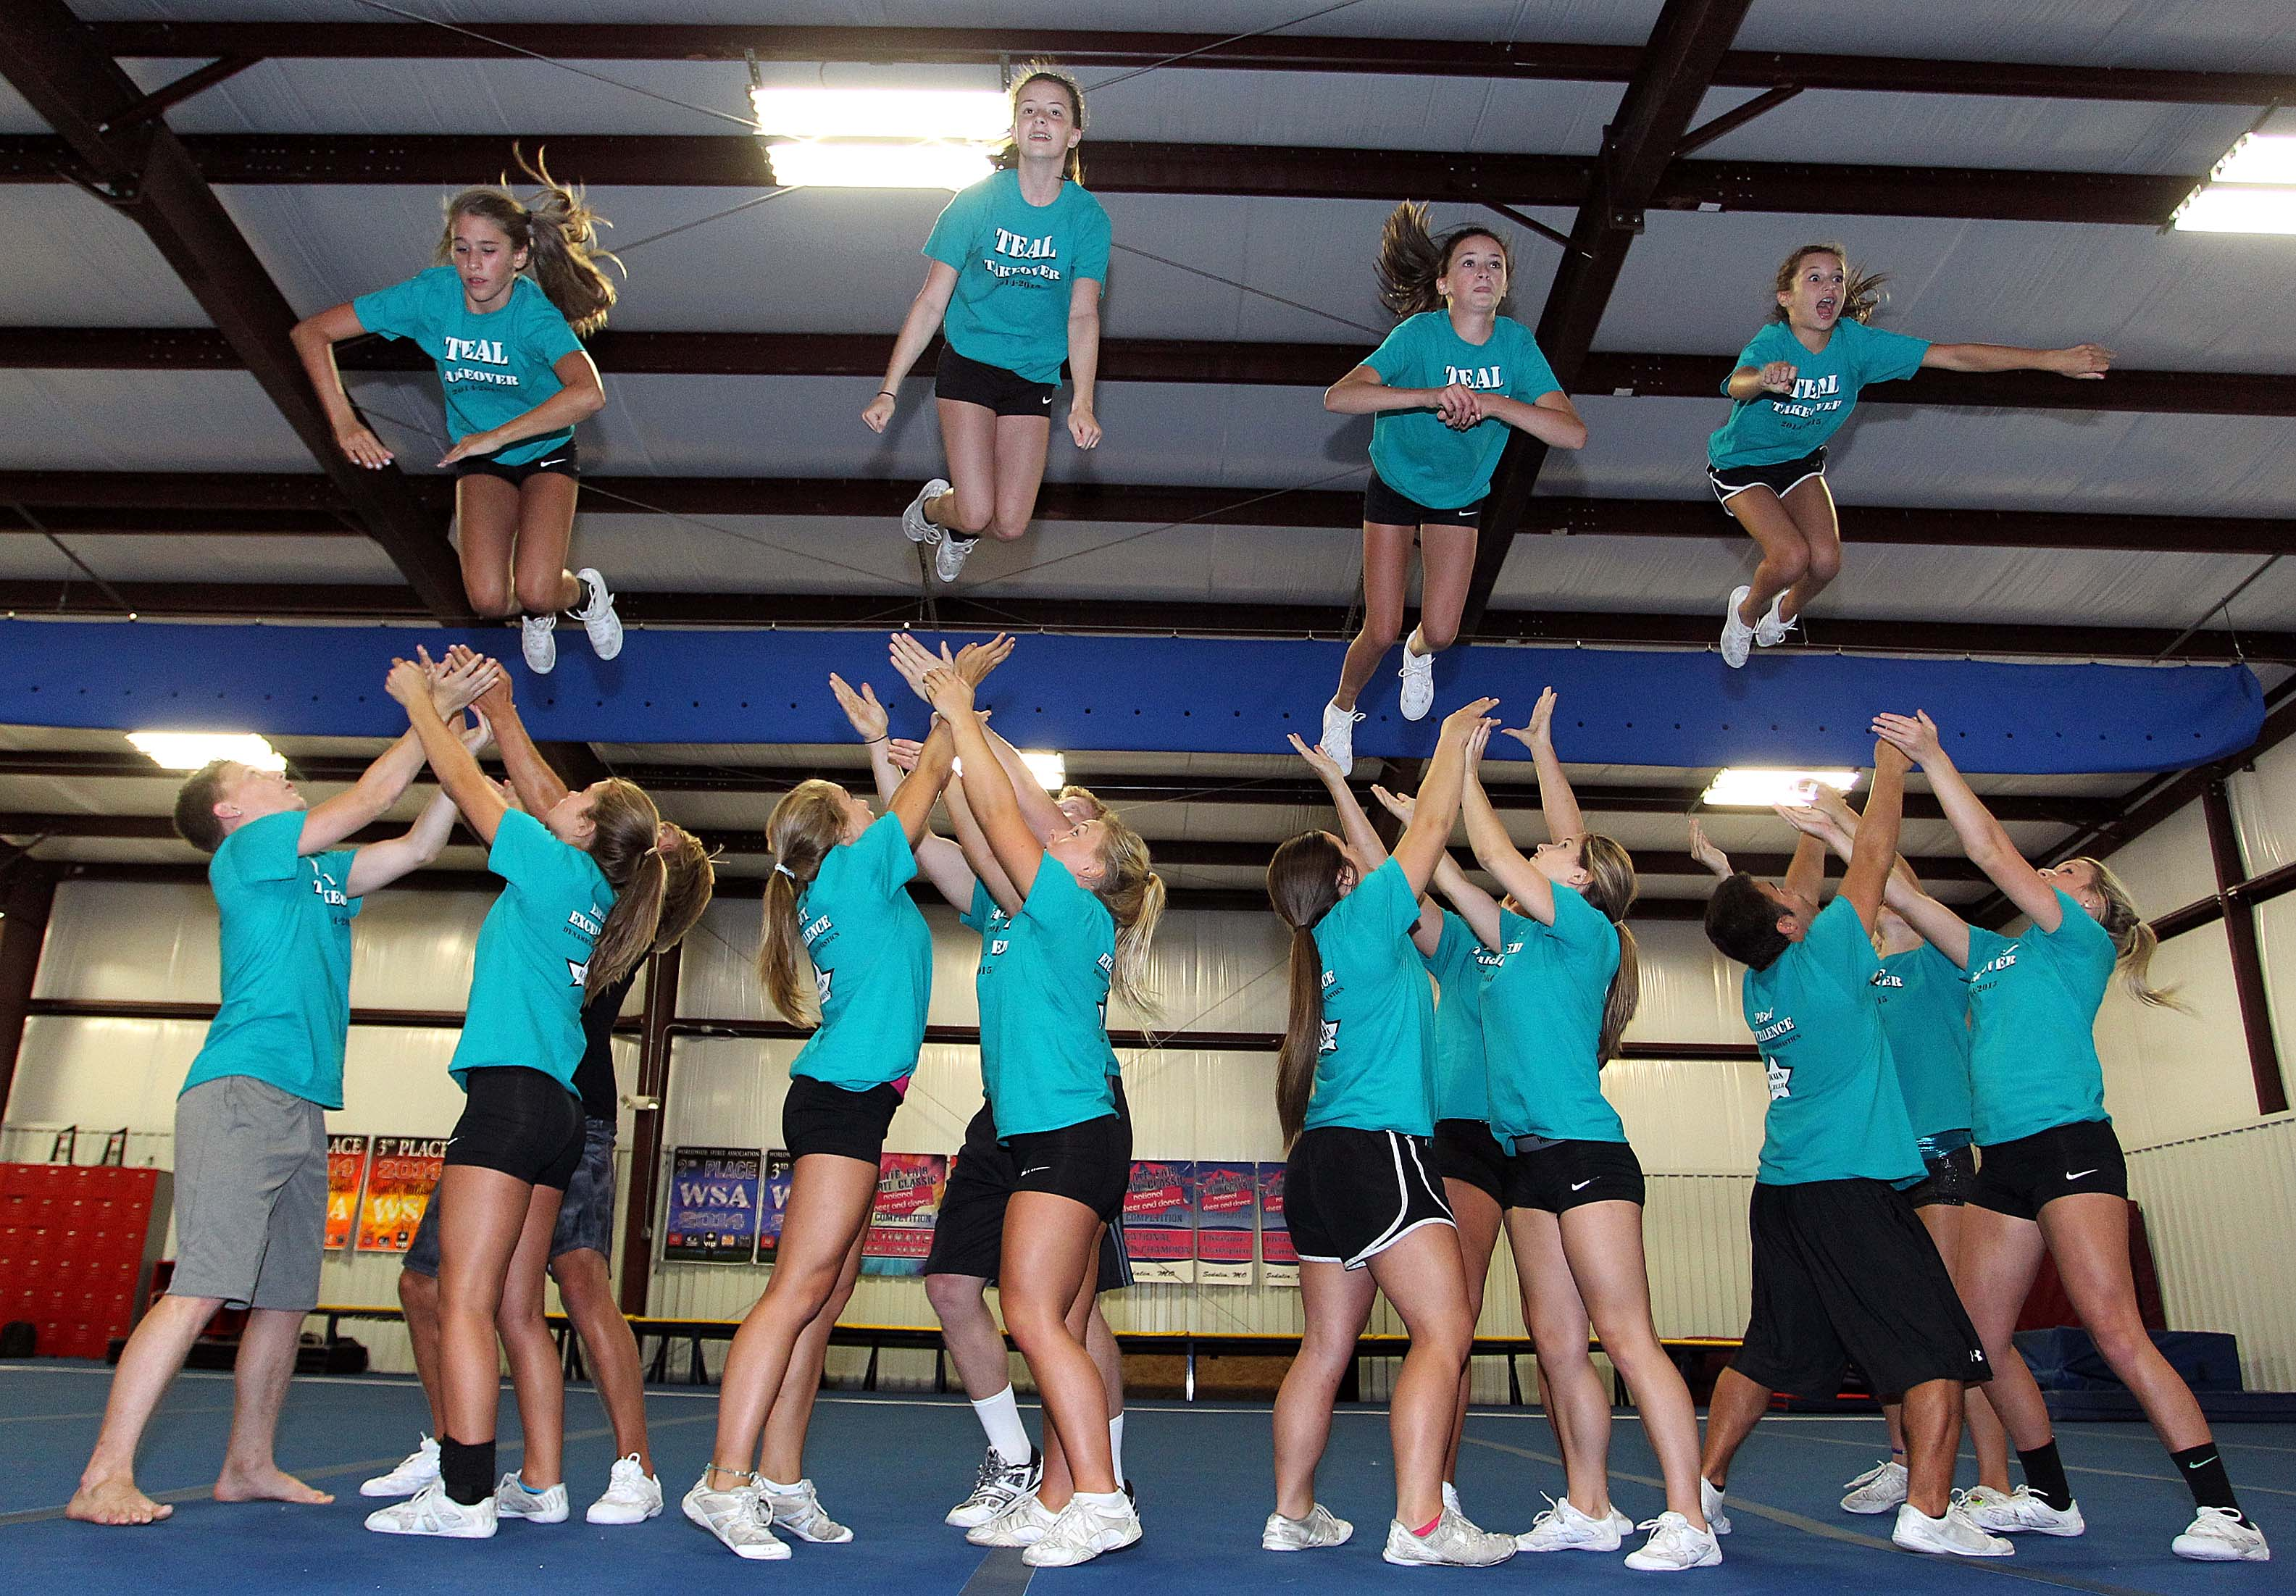 pics Serious Cheerleading Injuries On the Rise Due to Dangerous Stunts